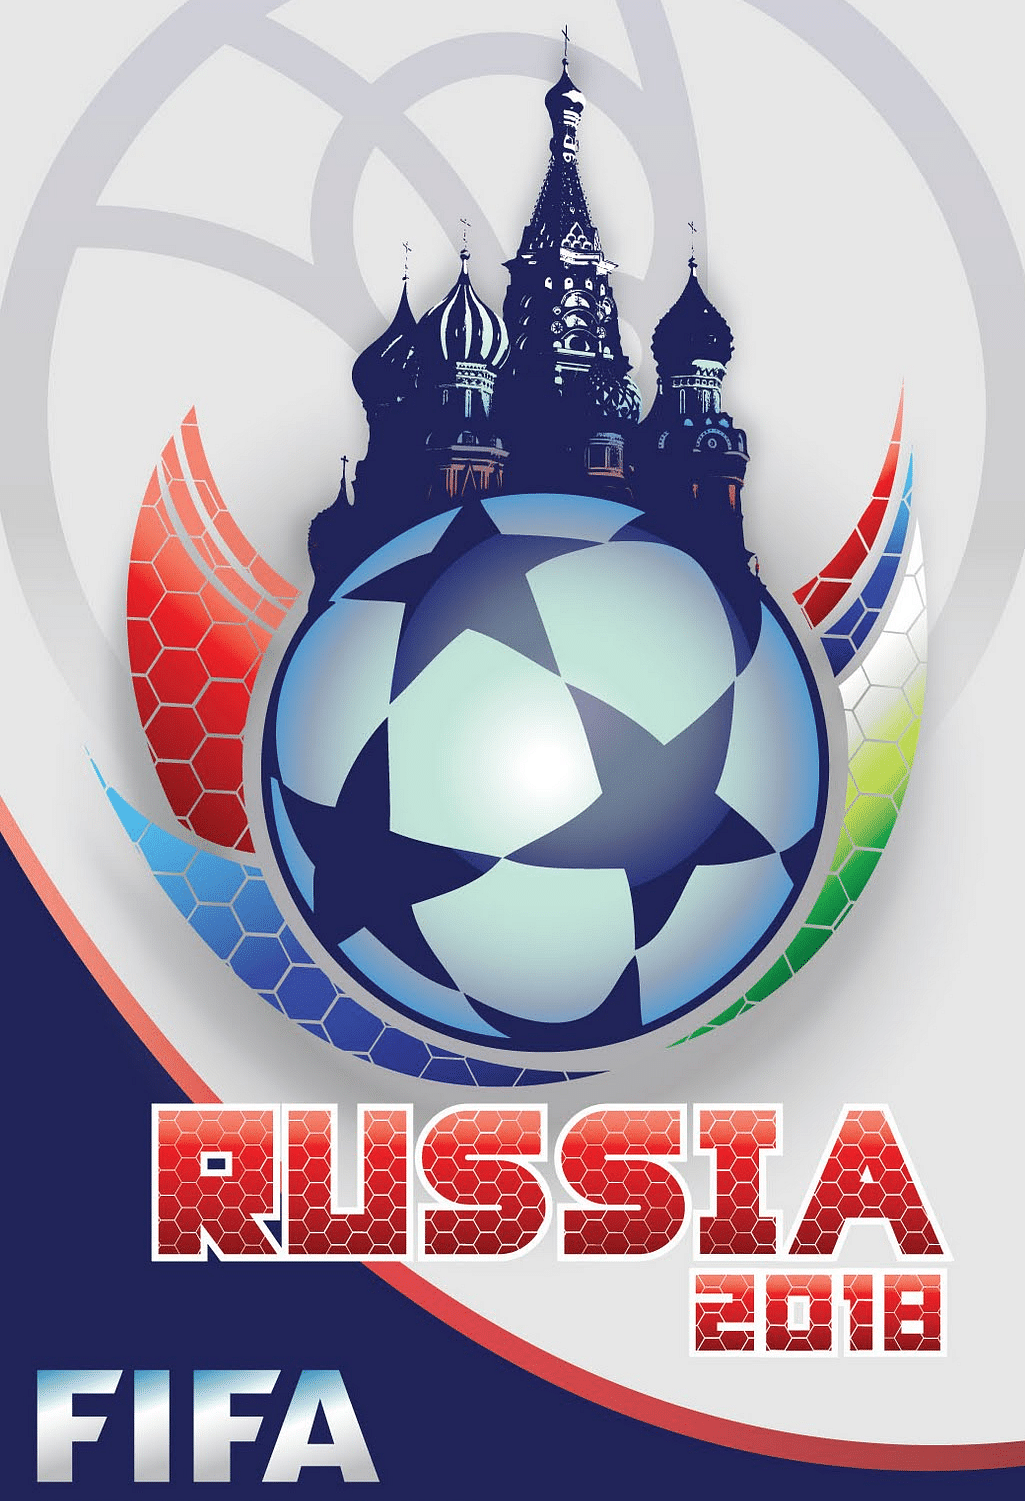 the world cup as a large economic boost for its host The soccer world cup will have a short-lived impact on the economy of its host russia, economists say, despite moscow's hopes that the billions of dollars spent on preparations for the tournament .